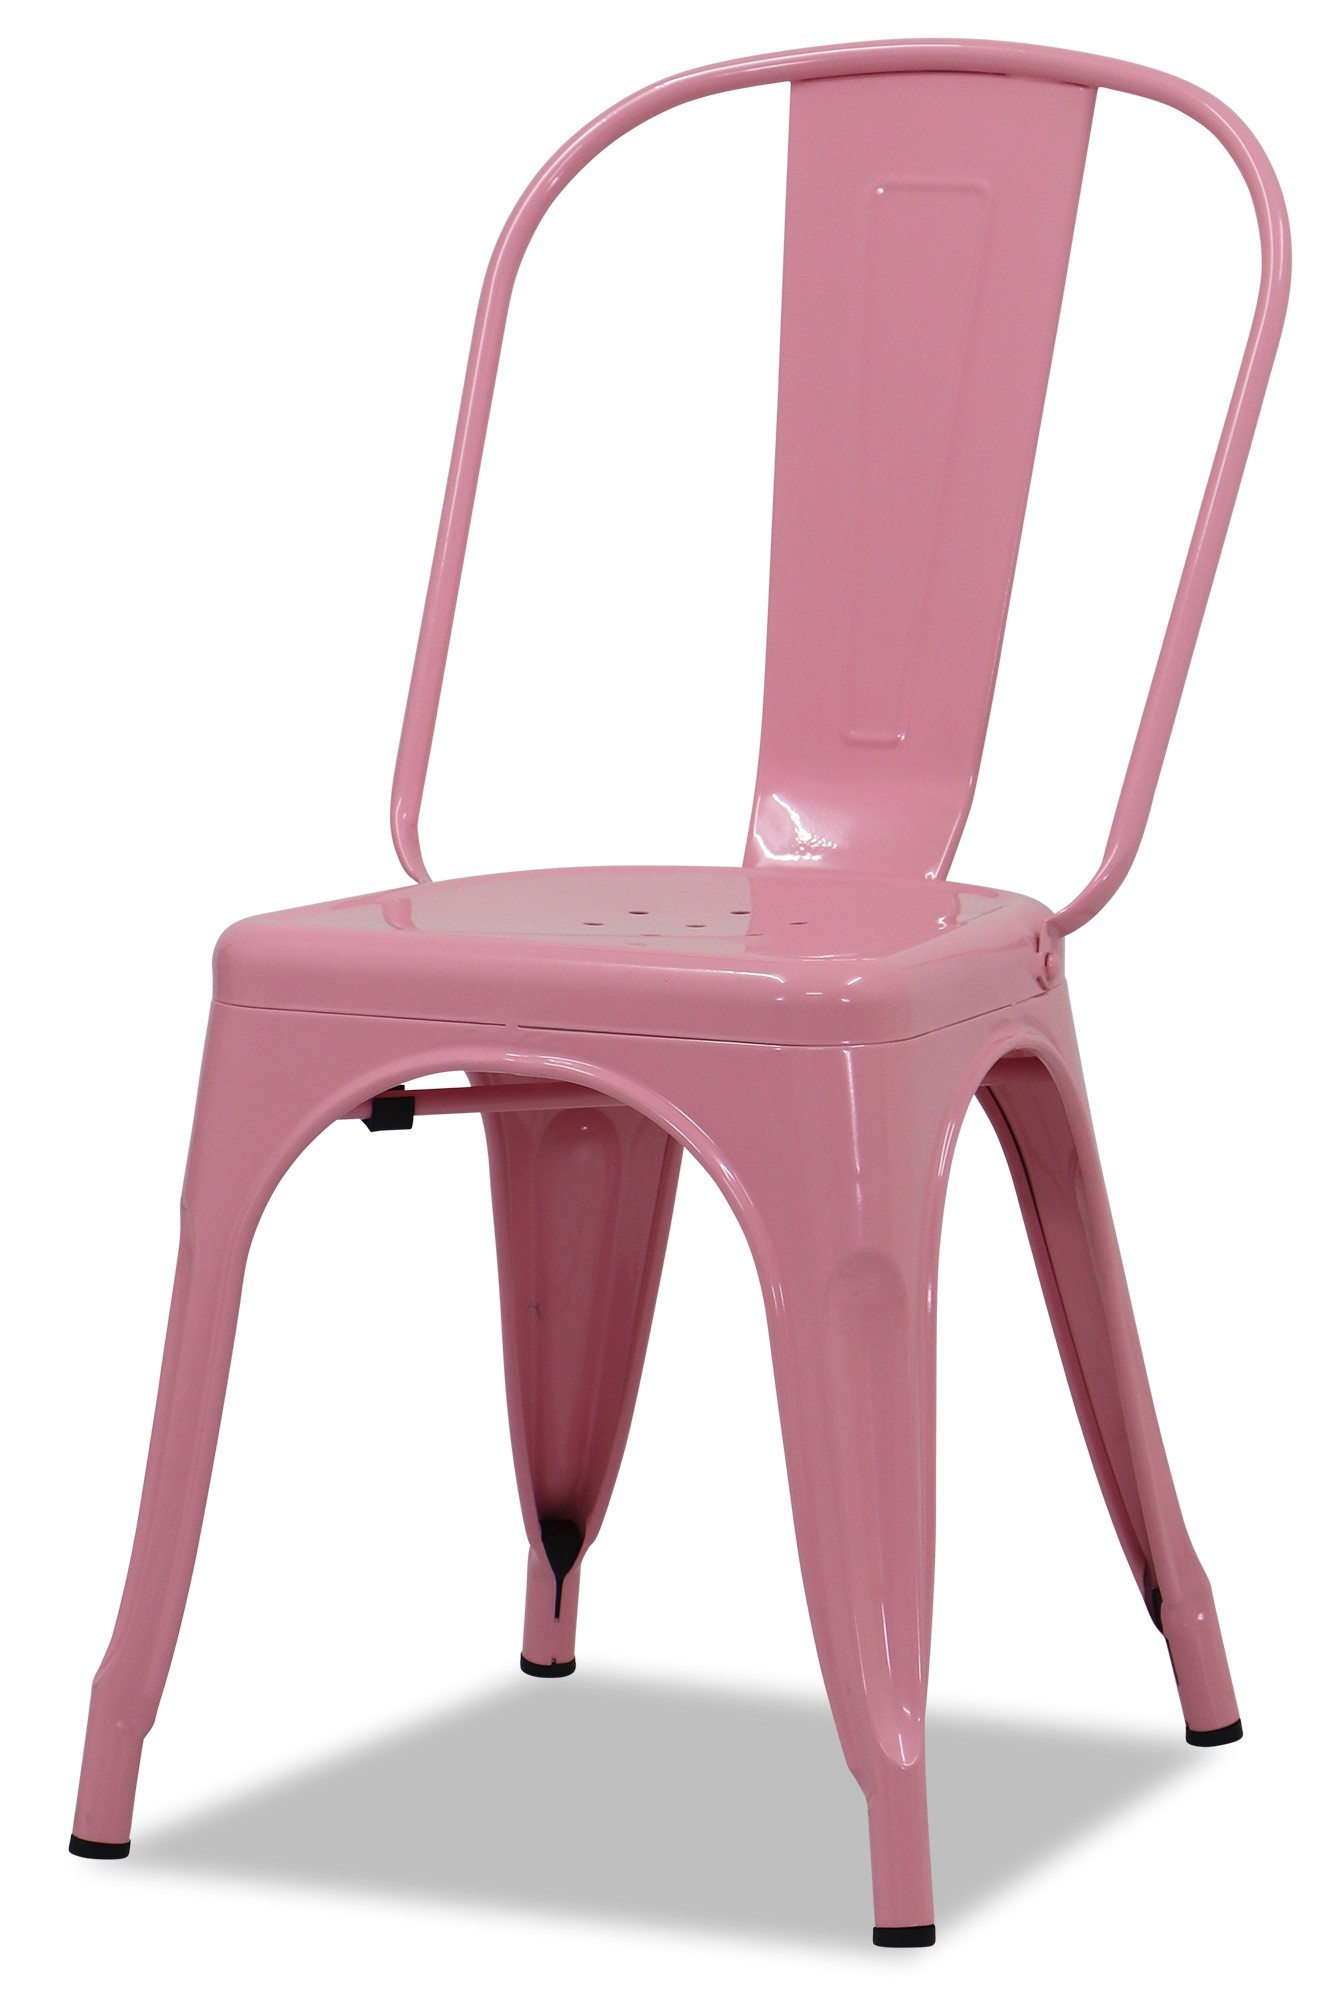 Retro Metal Chair Light Pink Chairs Seating